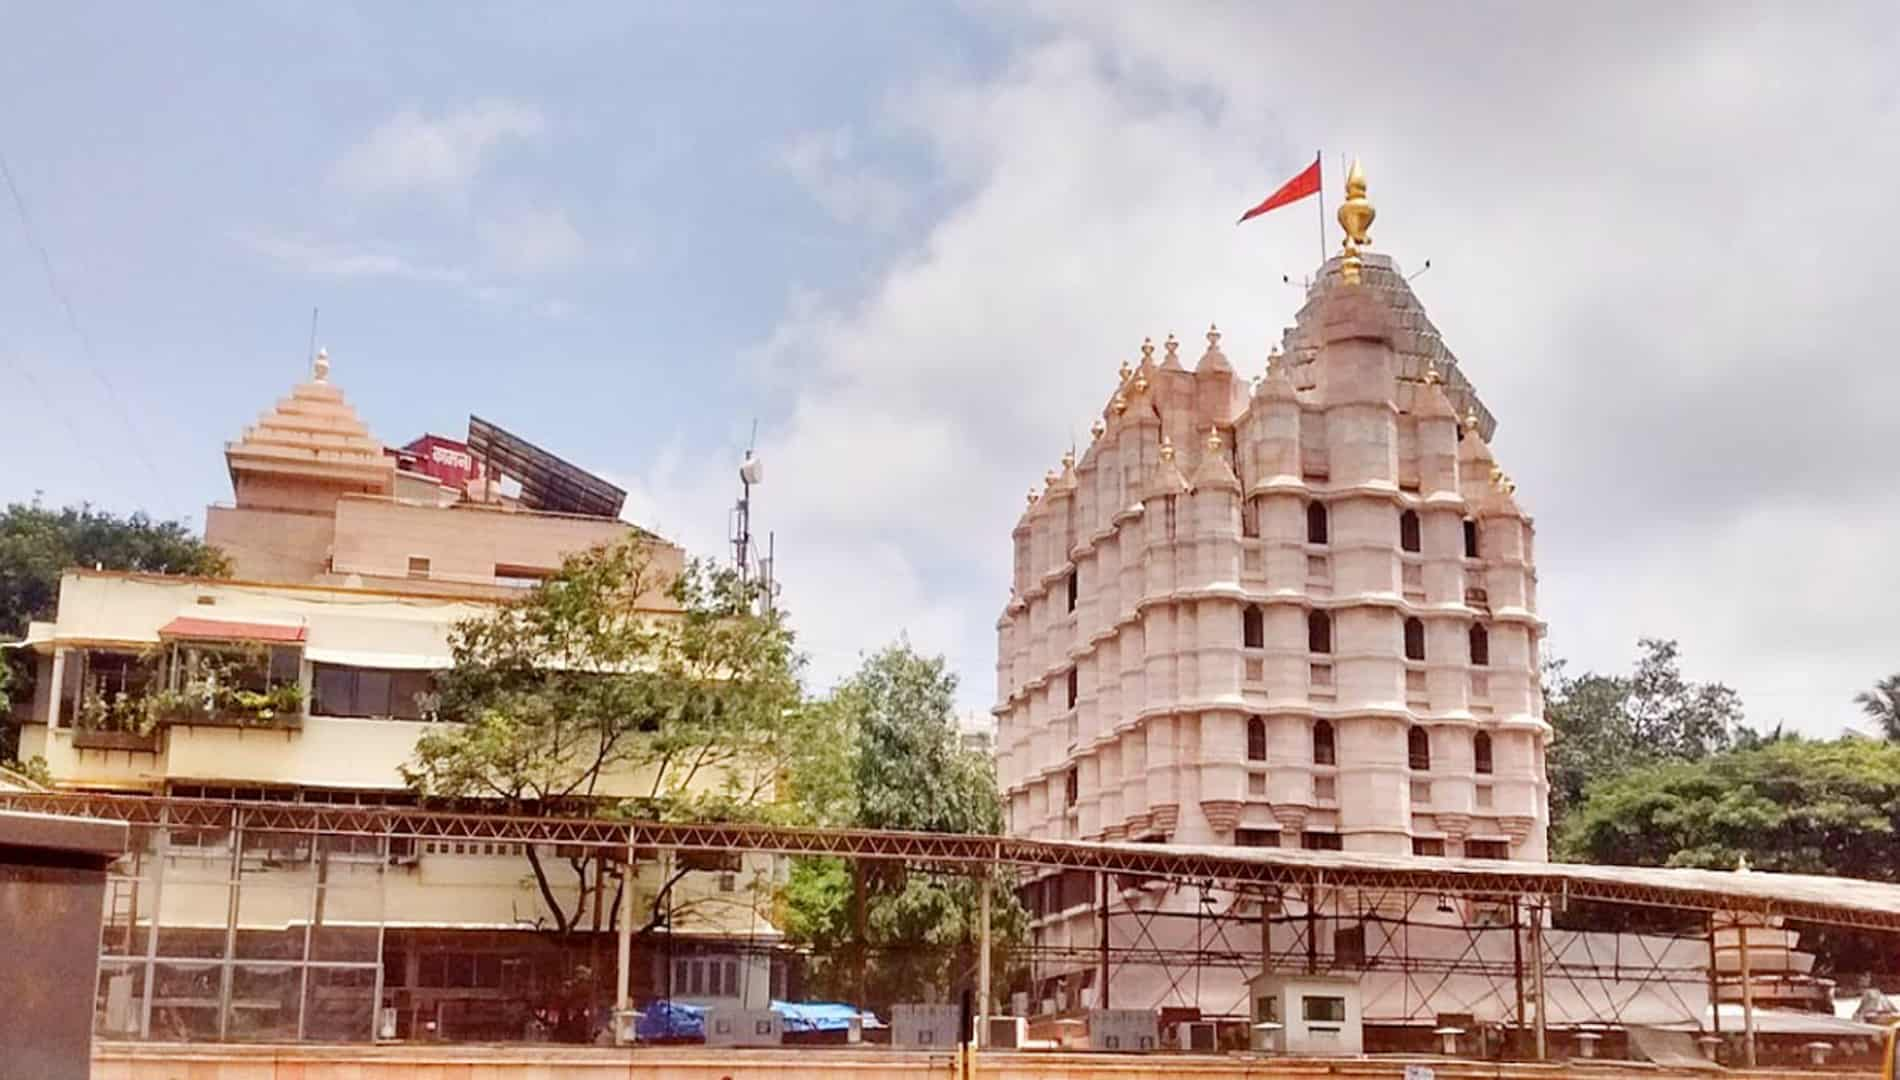 Siddhivinayak Temple - Mumbai Is The Famous Wealthiest Temples In India